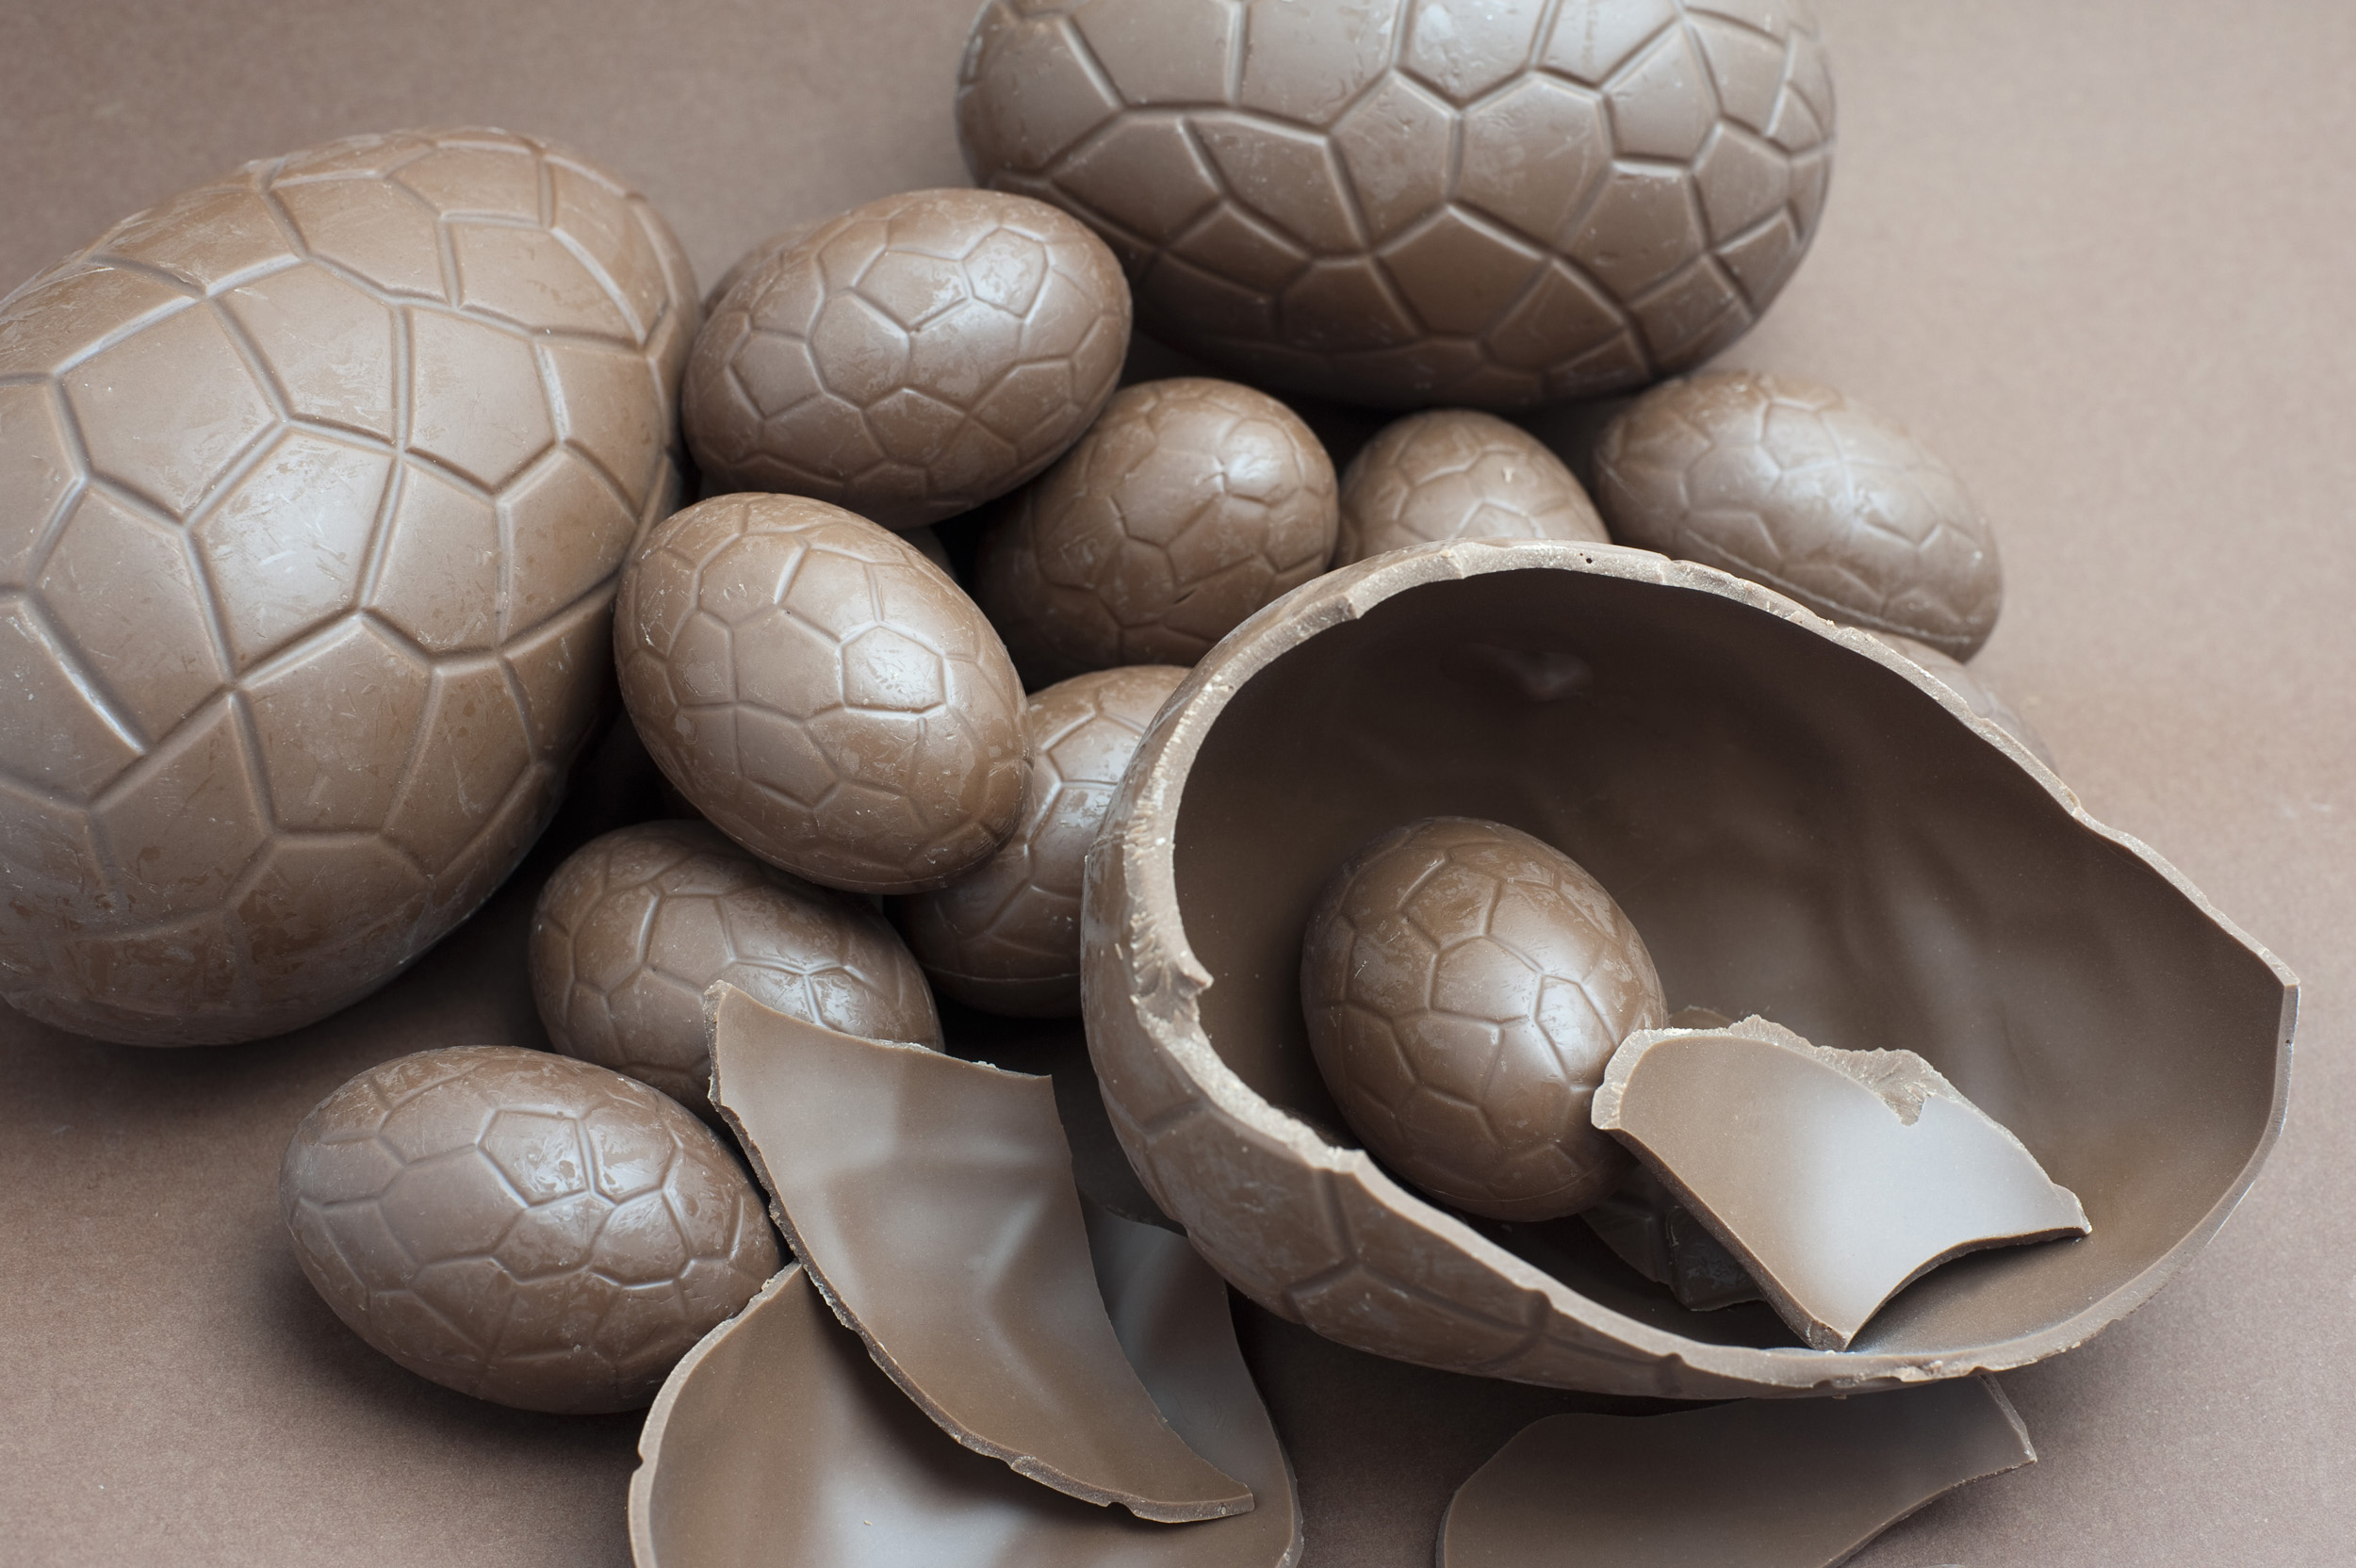 broken_easter_egg.jpg - Collection of various sized chocolate Easter Eggs with one large broken one in the foreground